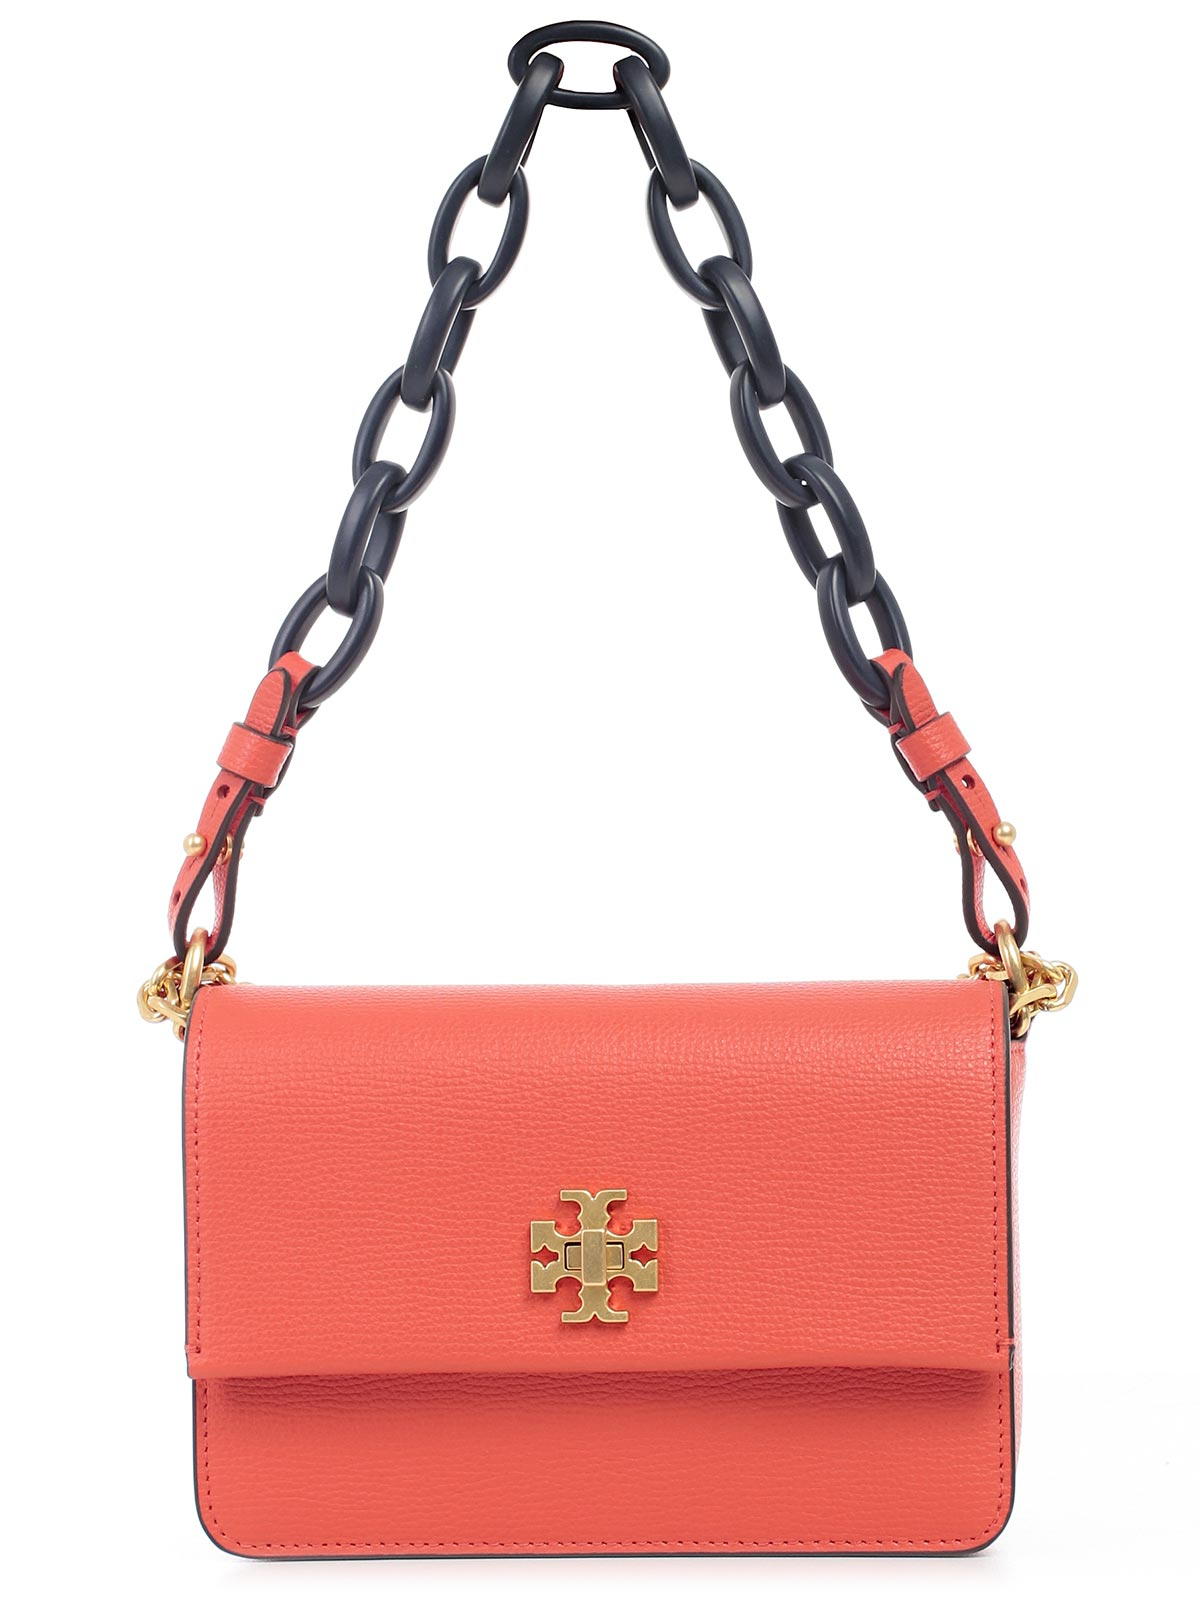 Picture of TORY BURCH Shoulder bag